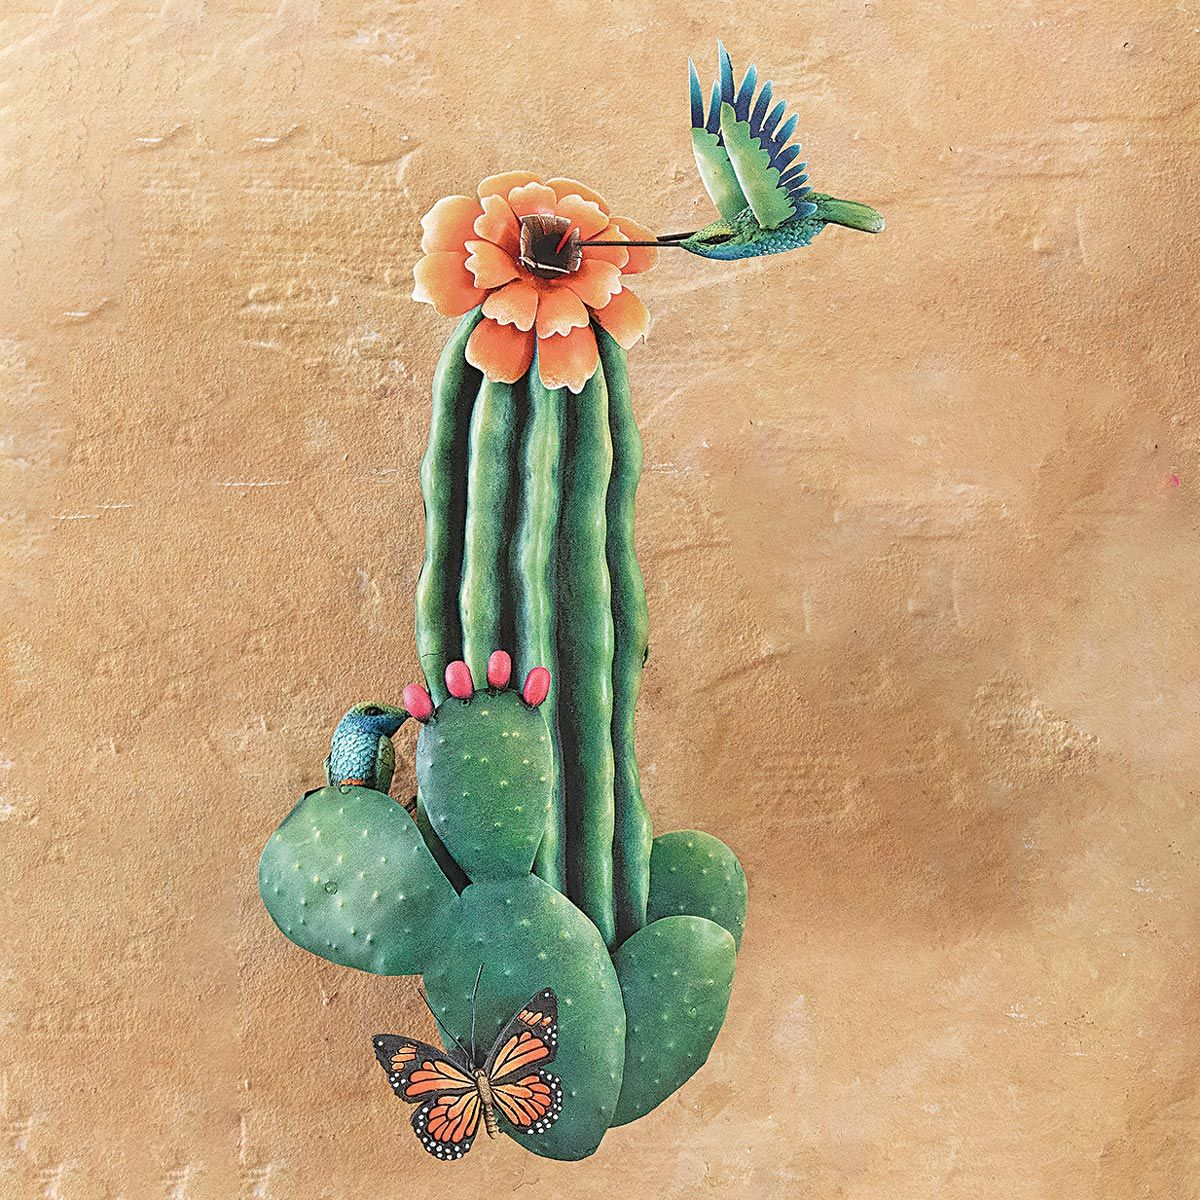 Hummingbird Cactus II 3-D Metal Wall Art